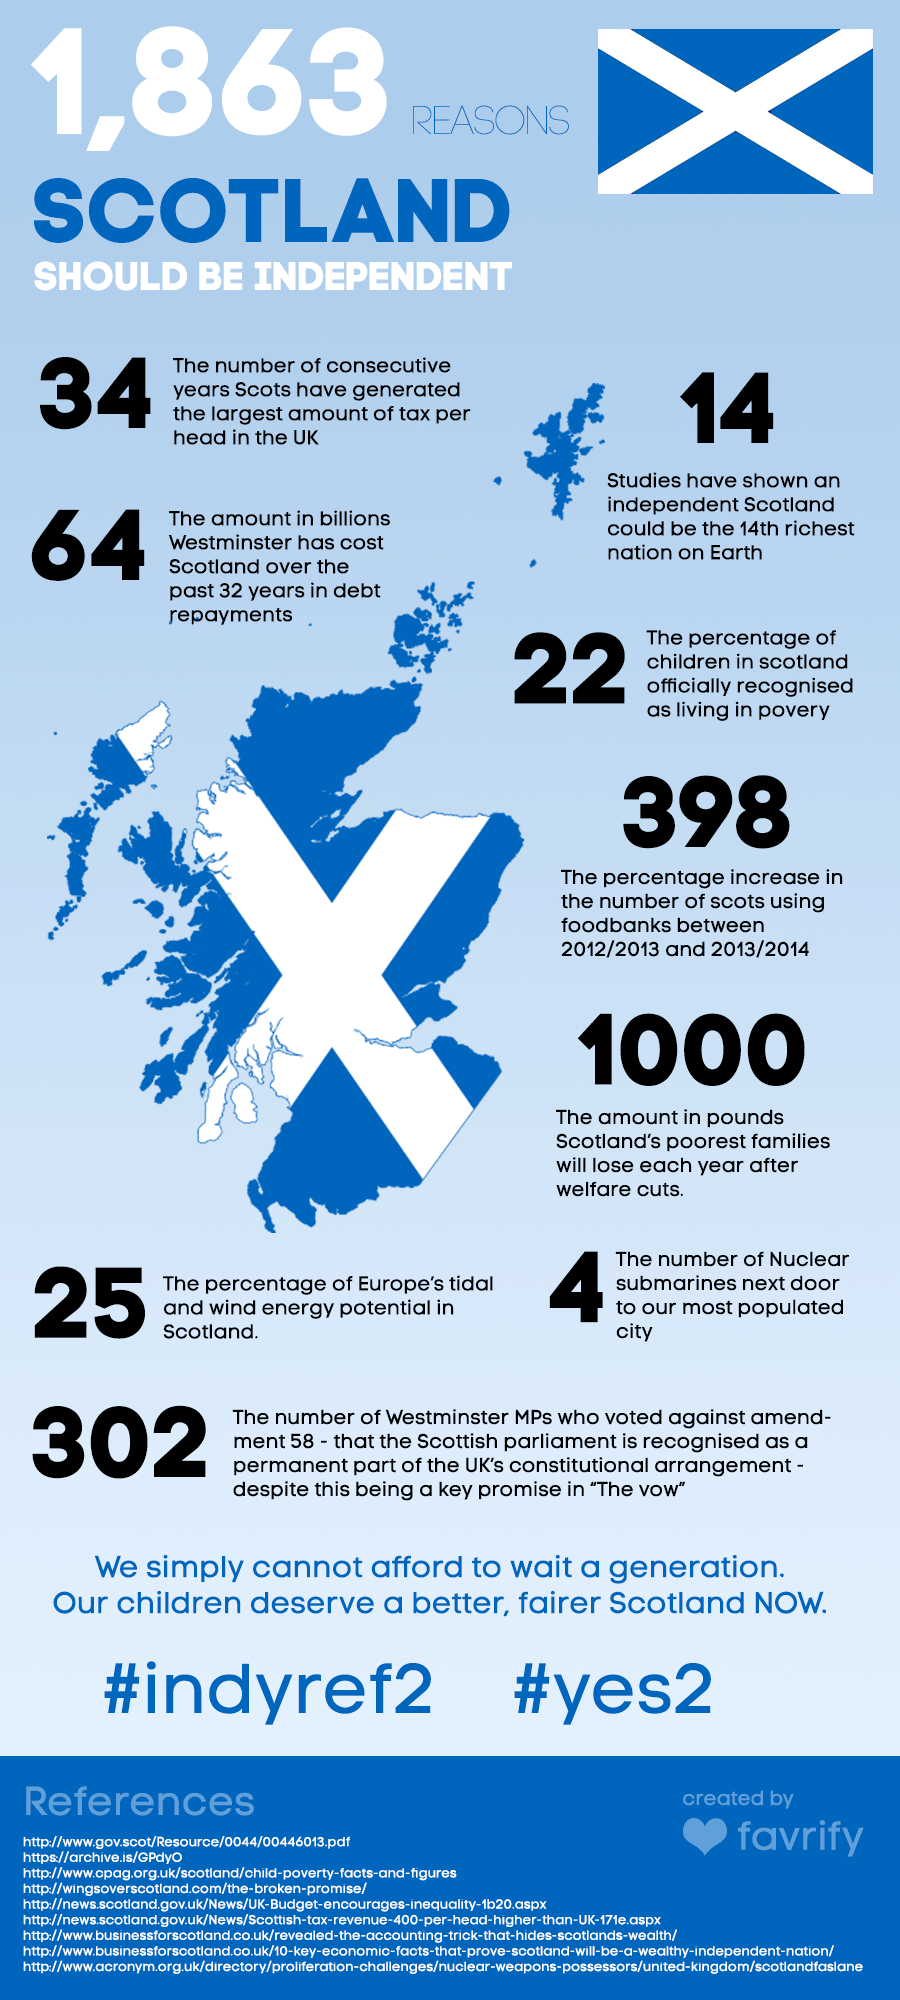 scotland-should-be-independent